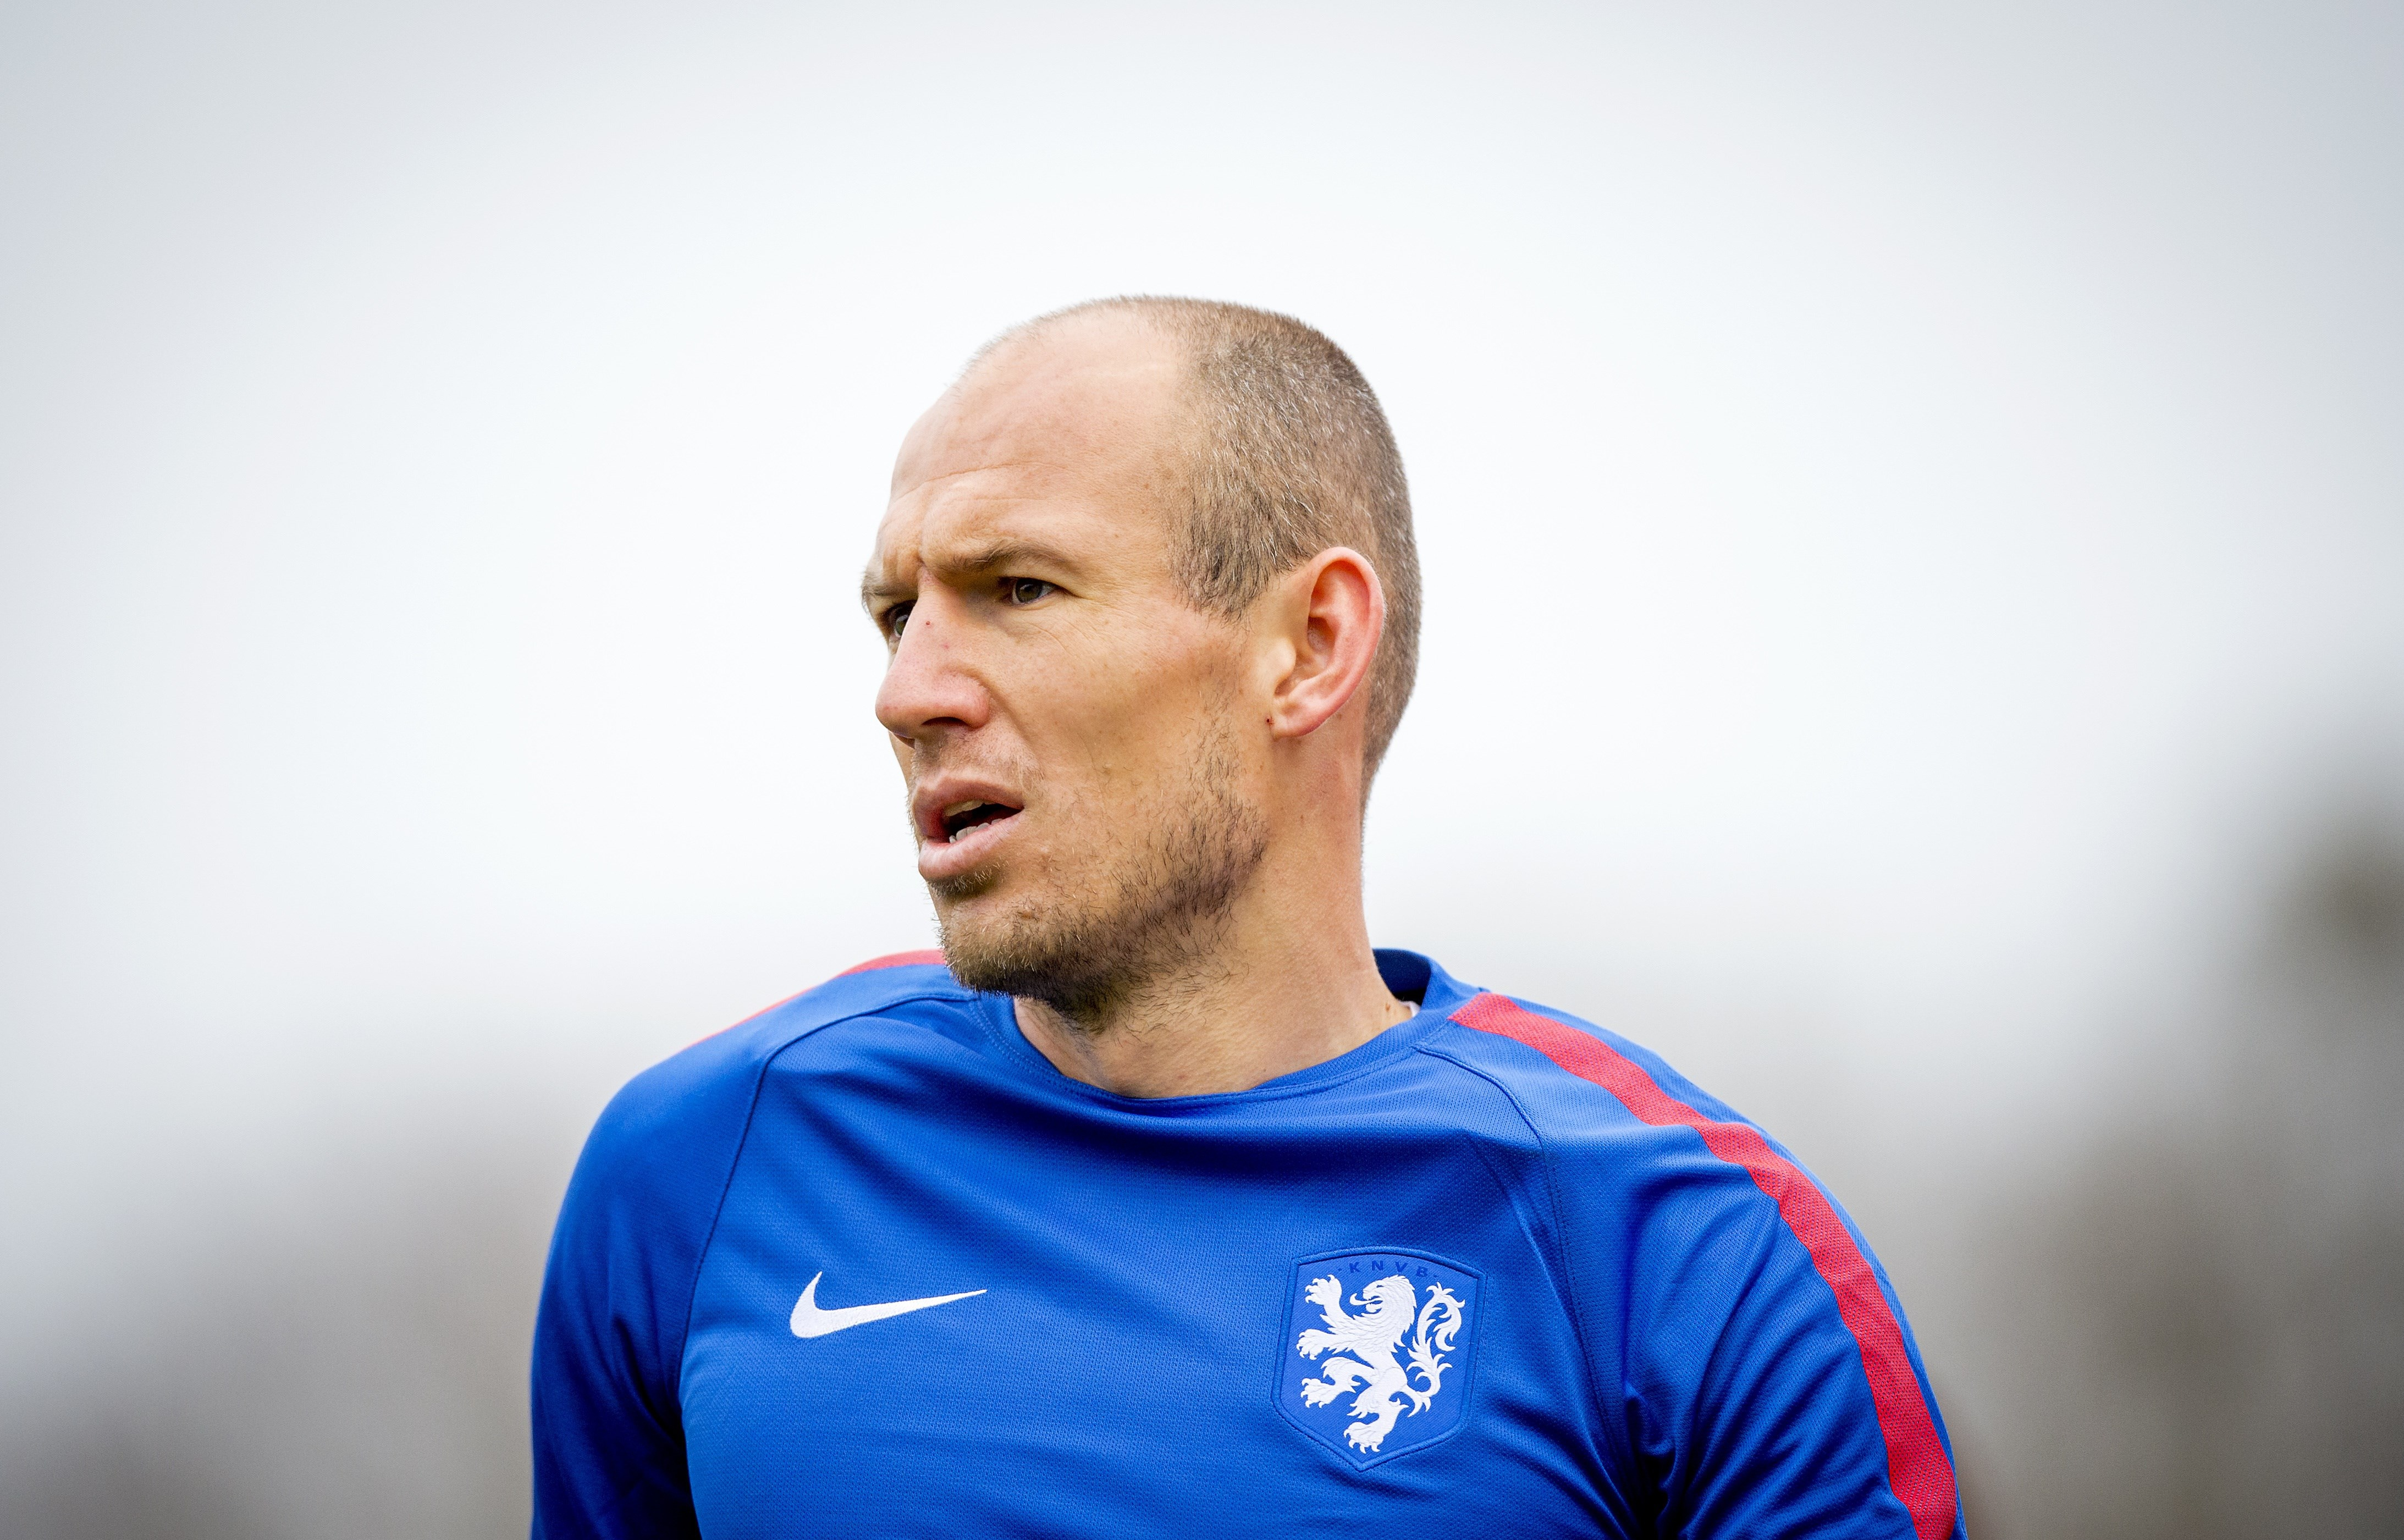 Dutch national football player Arjen Robben attends a training session in Katwijk on November 10, 2015. The Netherlands will face Wales on November 13 and Germany on November 17 in friendly matches. AFP PHOTO / ANP / ROBIN VAN LONKHUIJSEN netherlands out (Photo credit should read ROBIN VAN LONKHUIJSEN/AFP/Getty Images)